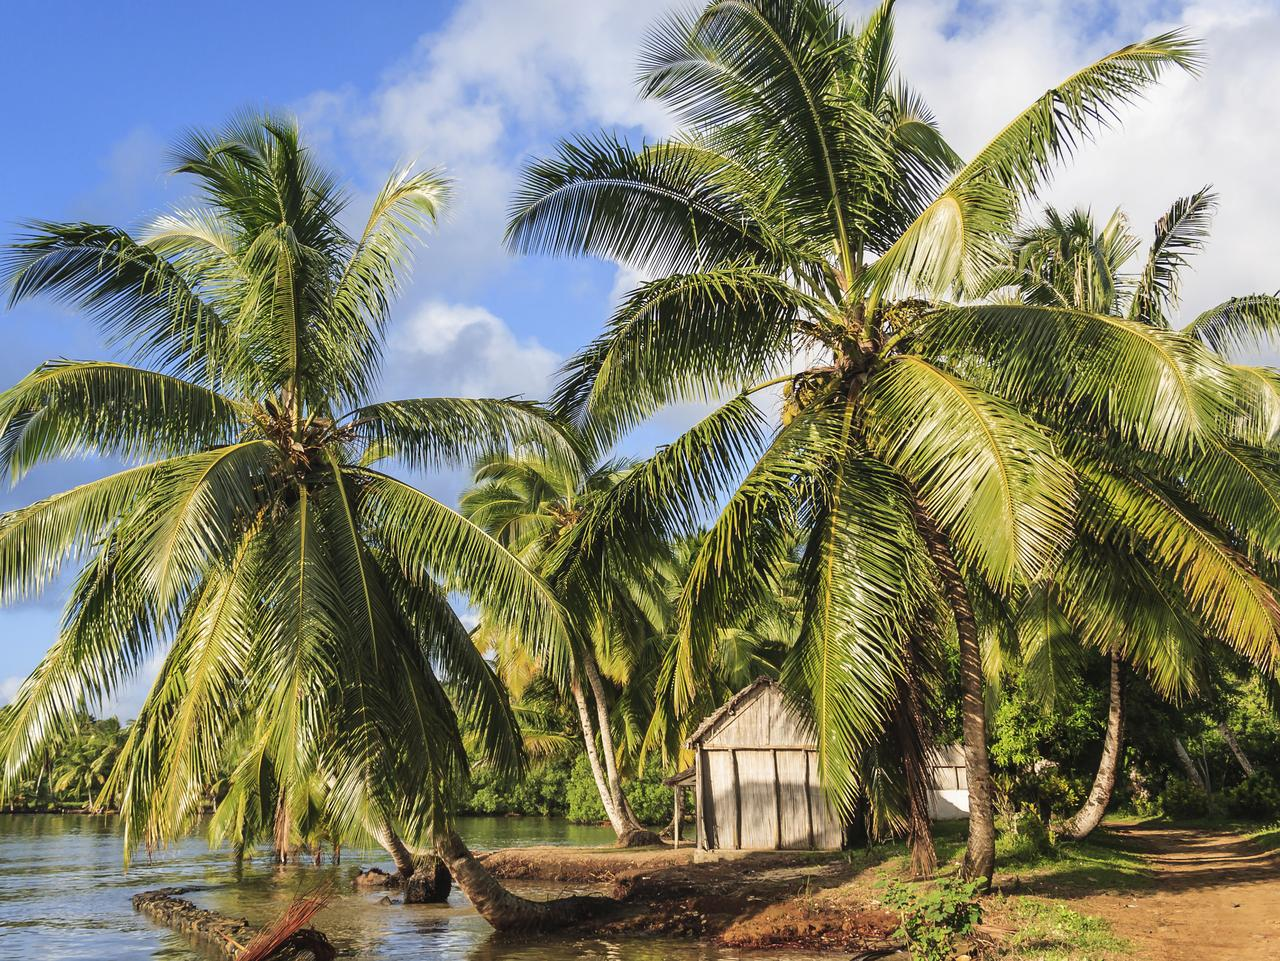 Tropical Madagascar has potential as a tourist destination — particularly among surfers. Picture: Thinkstock